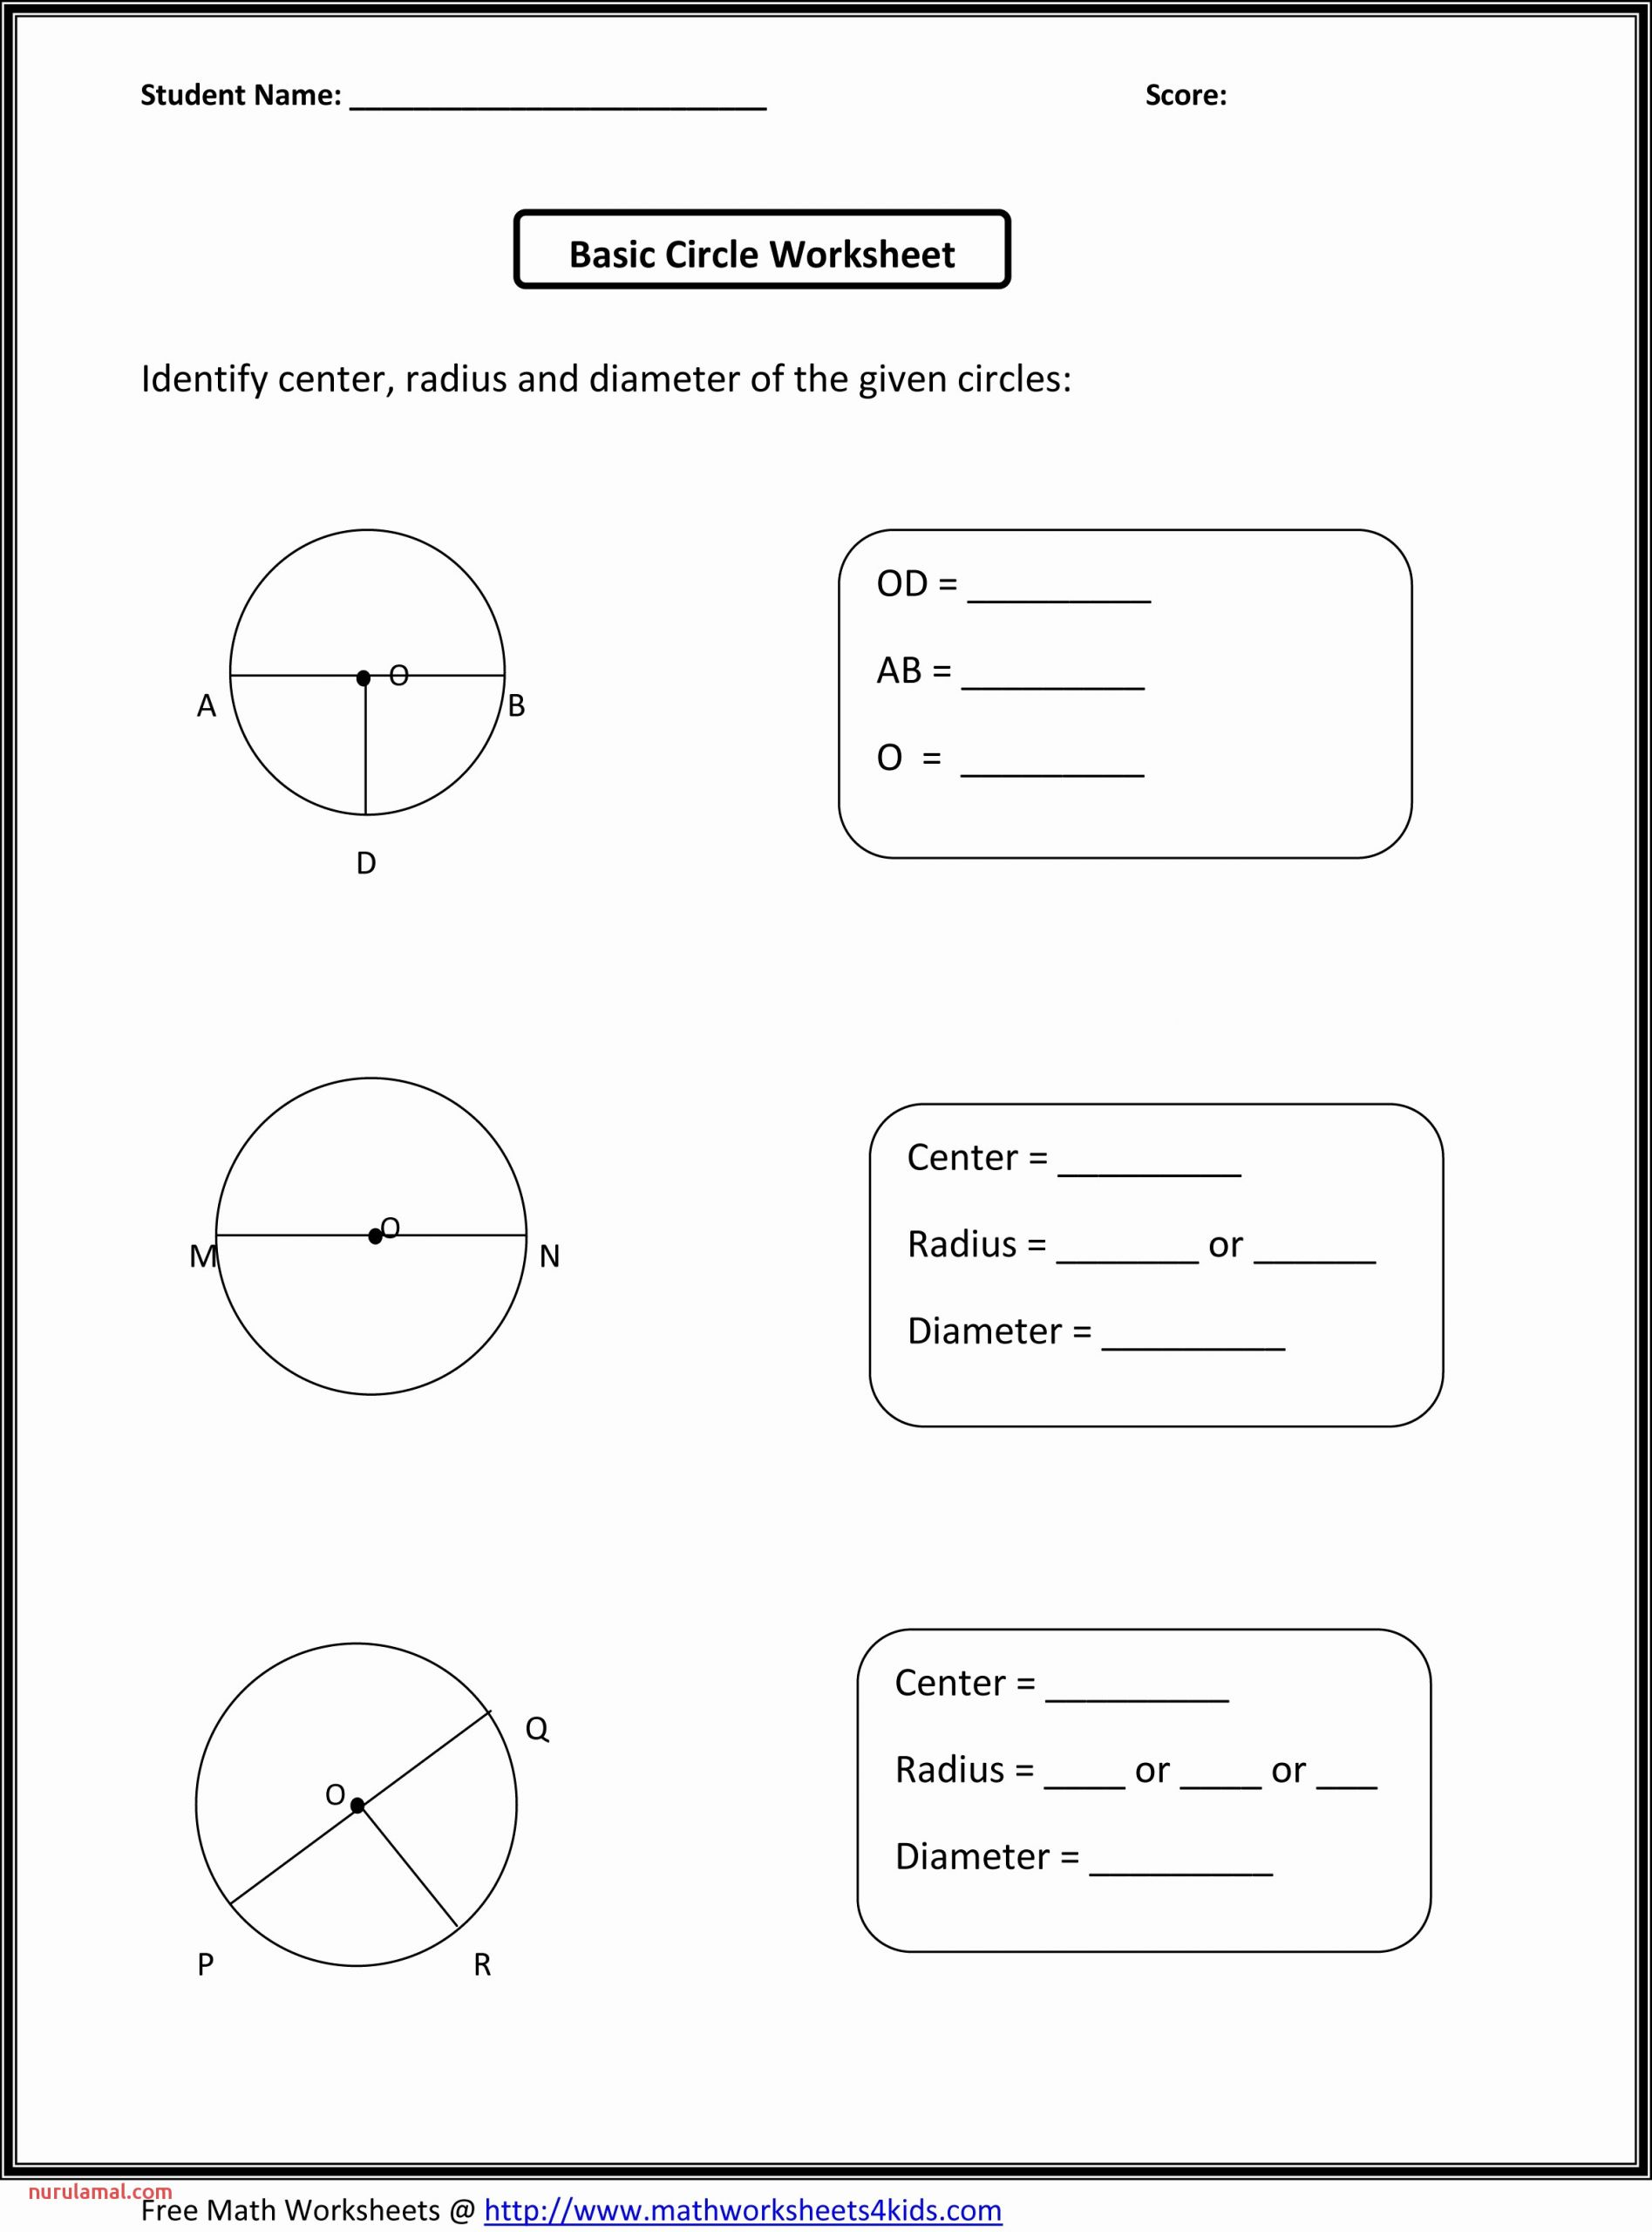 Rounding Worksheets 4th Grade to Printable Rounding